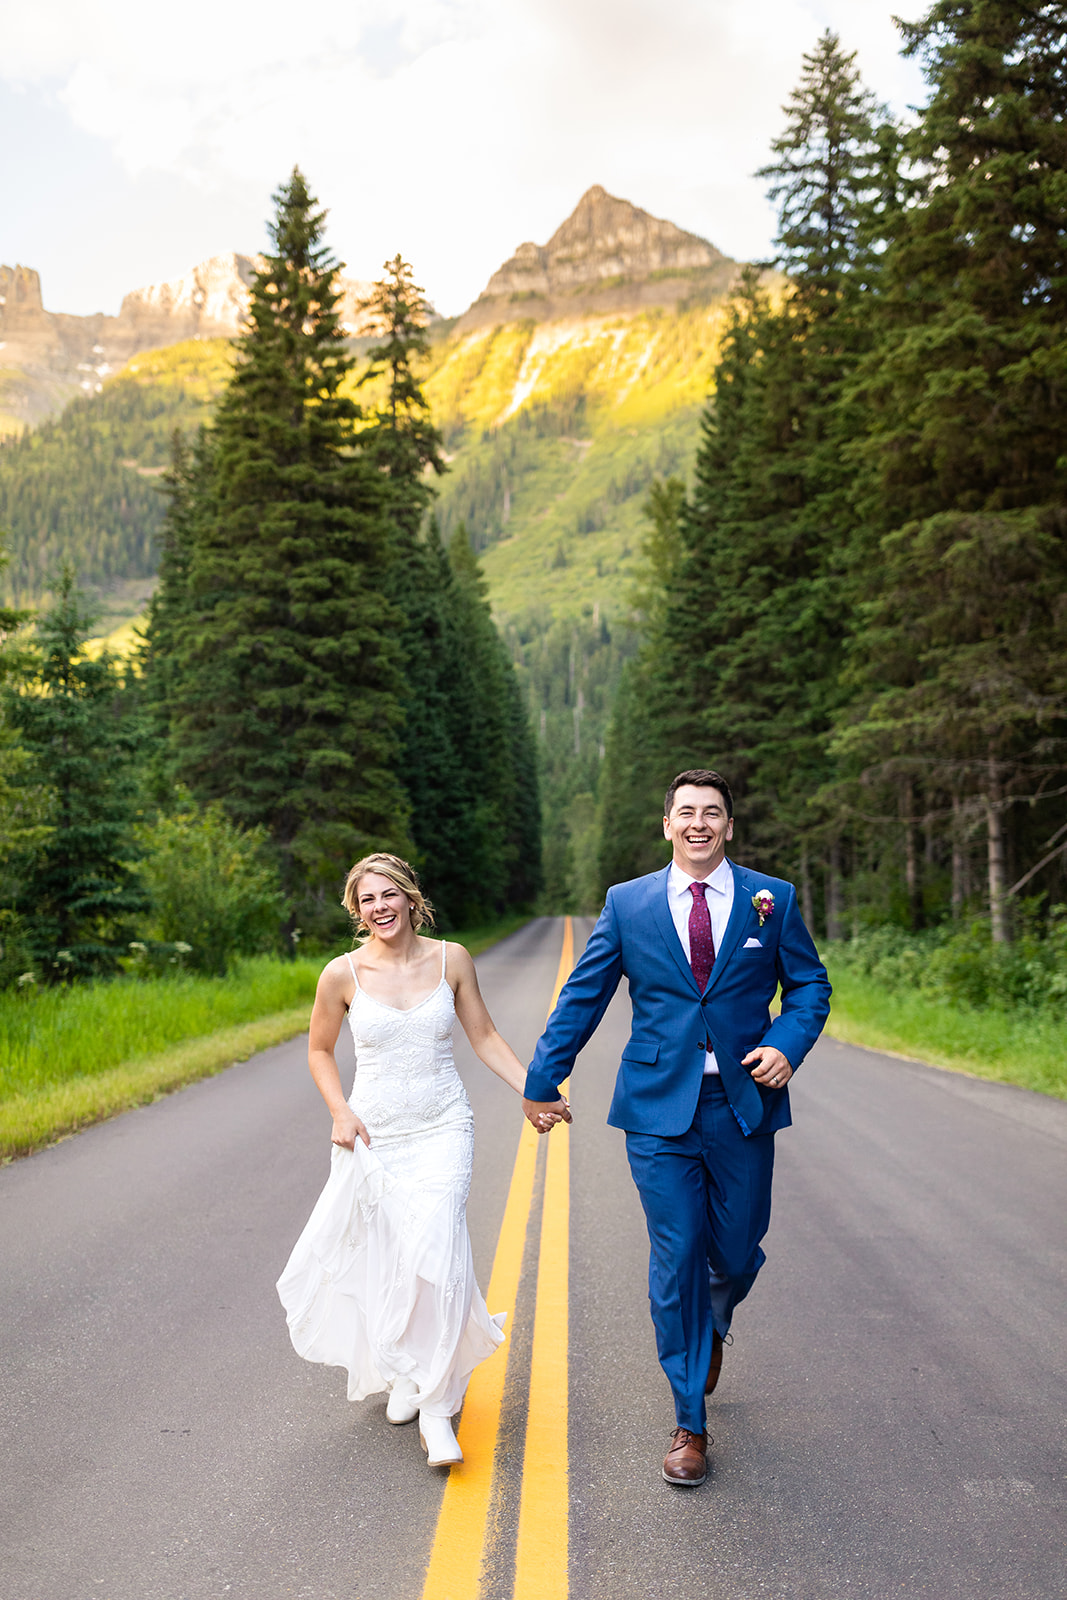 How to Get Married in Glacier National Park